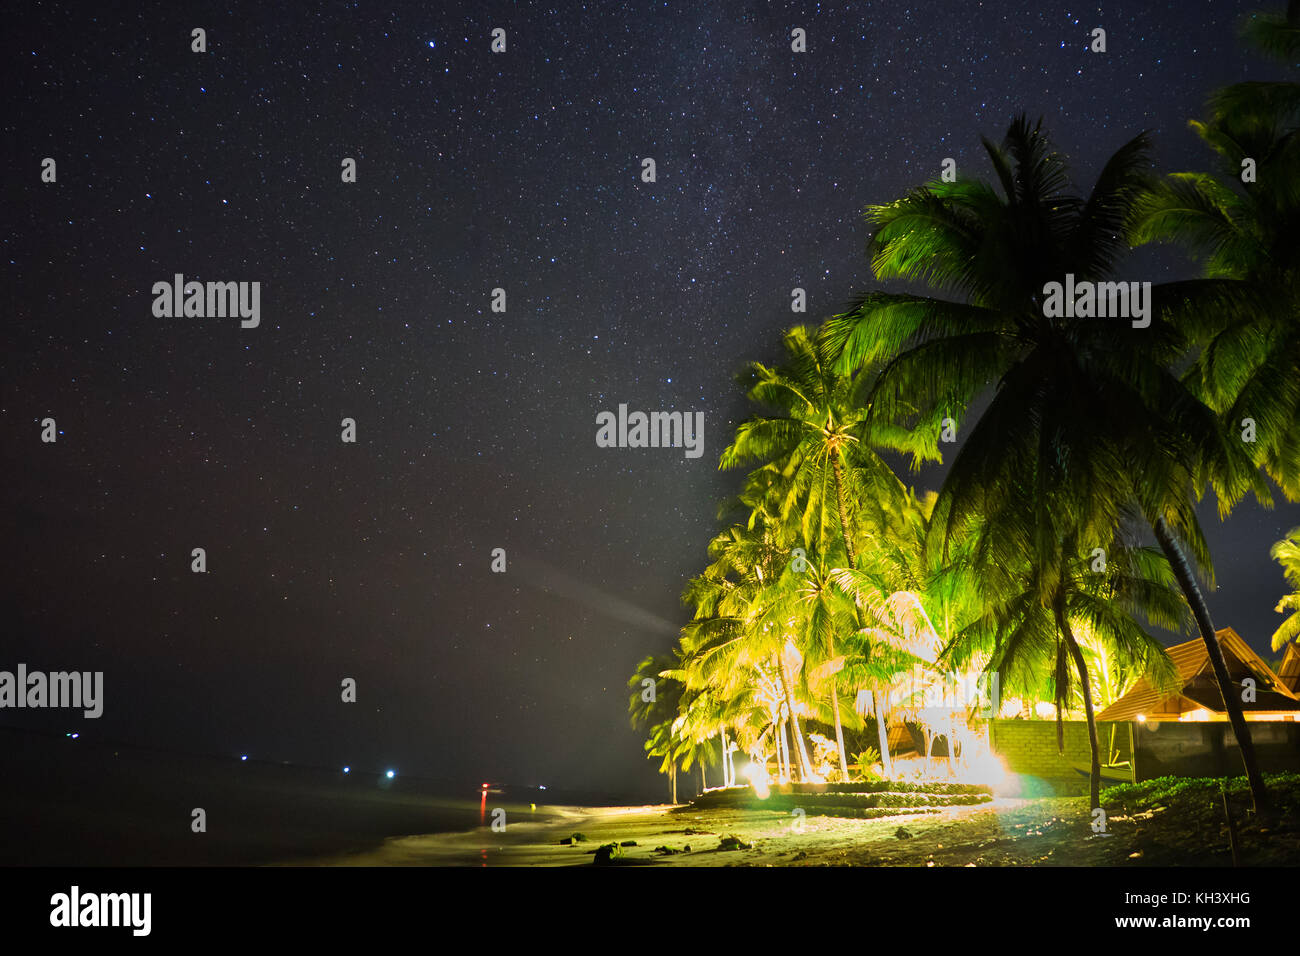 Night Sky Stars over beach with house and palm trees - Stock Image